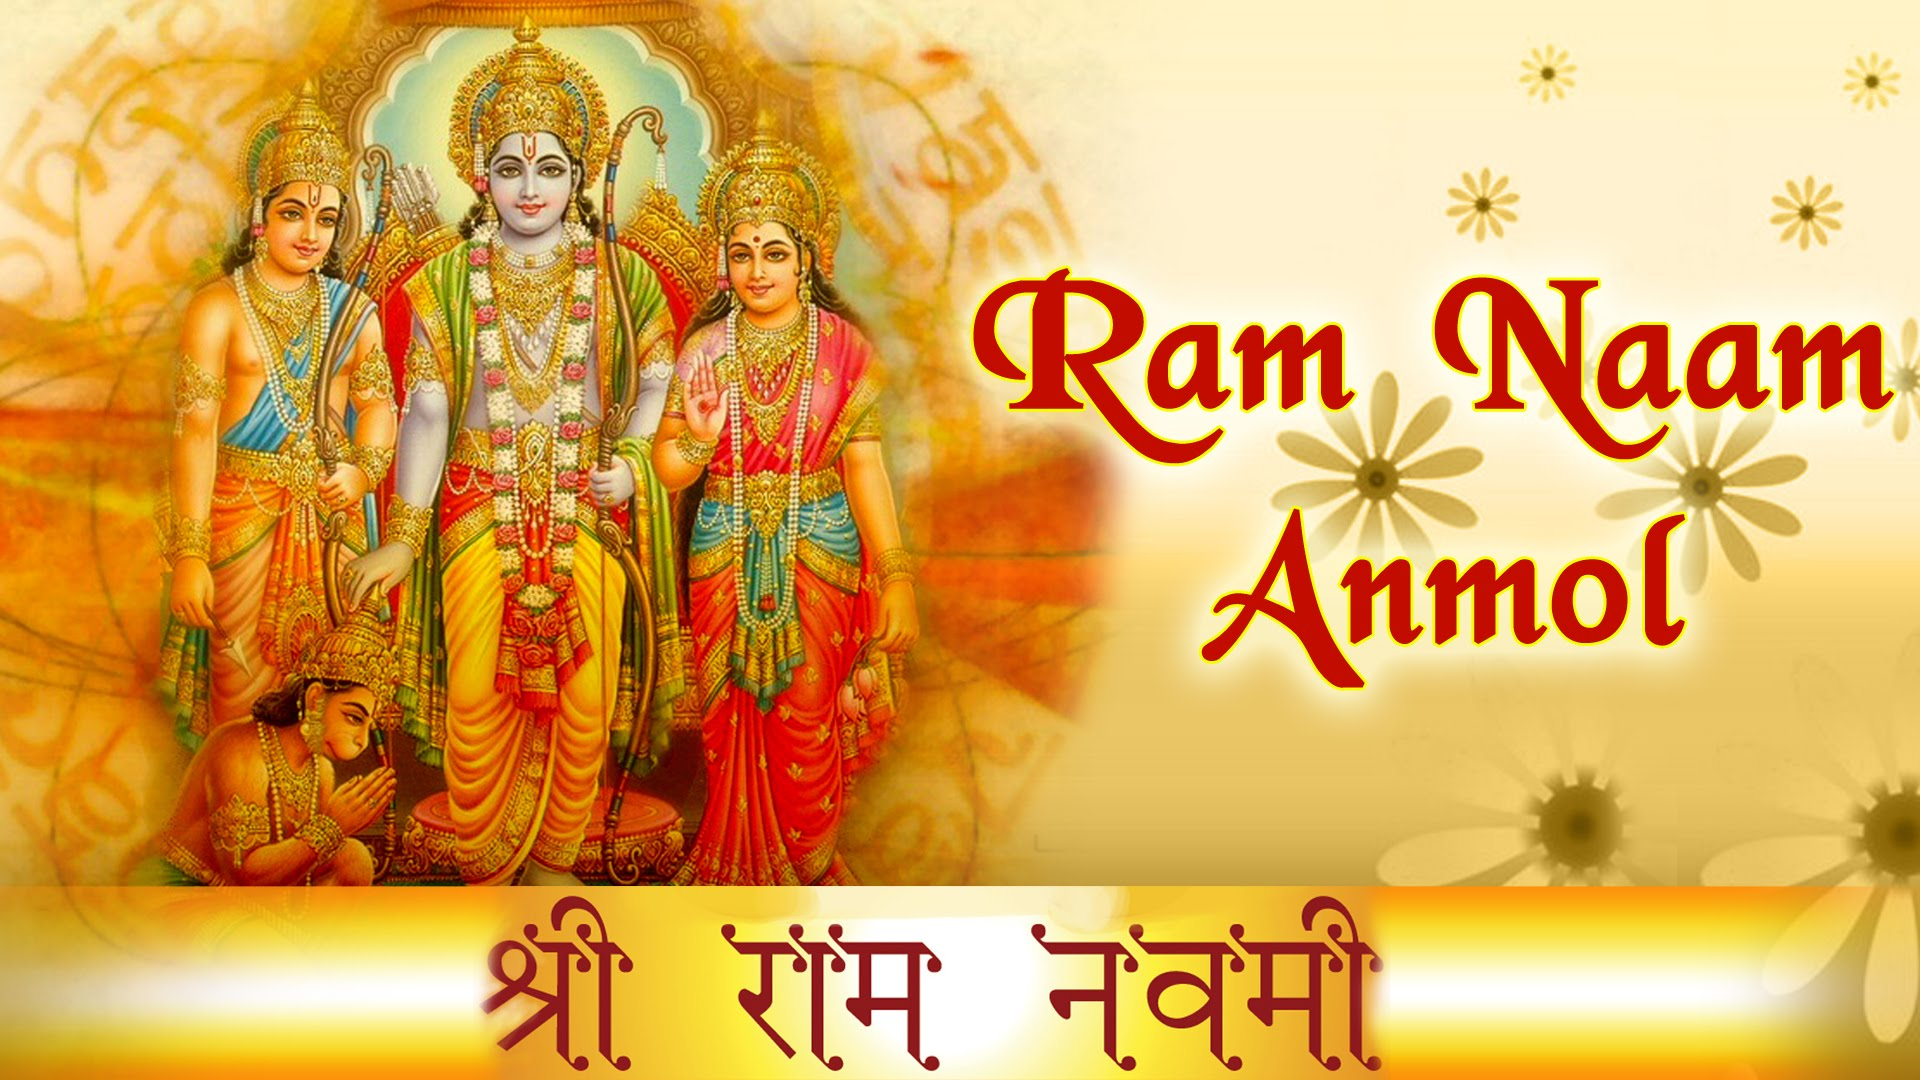 20 Ram Navami Images For Whatsapp Dp Profile Wallpapers Free